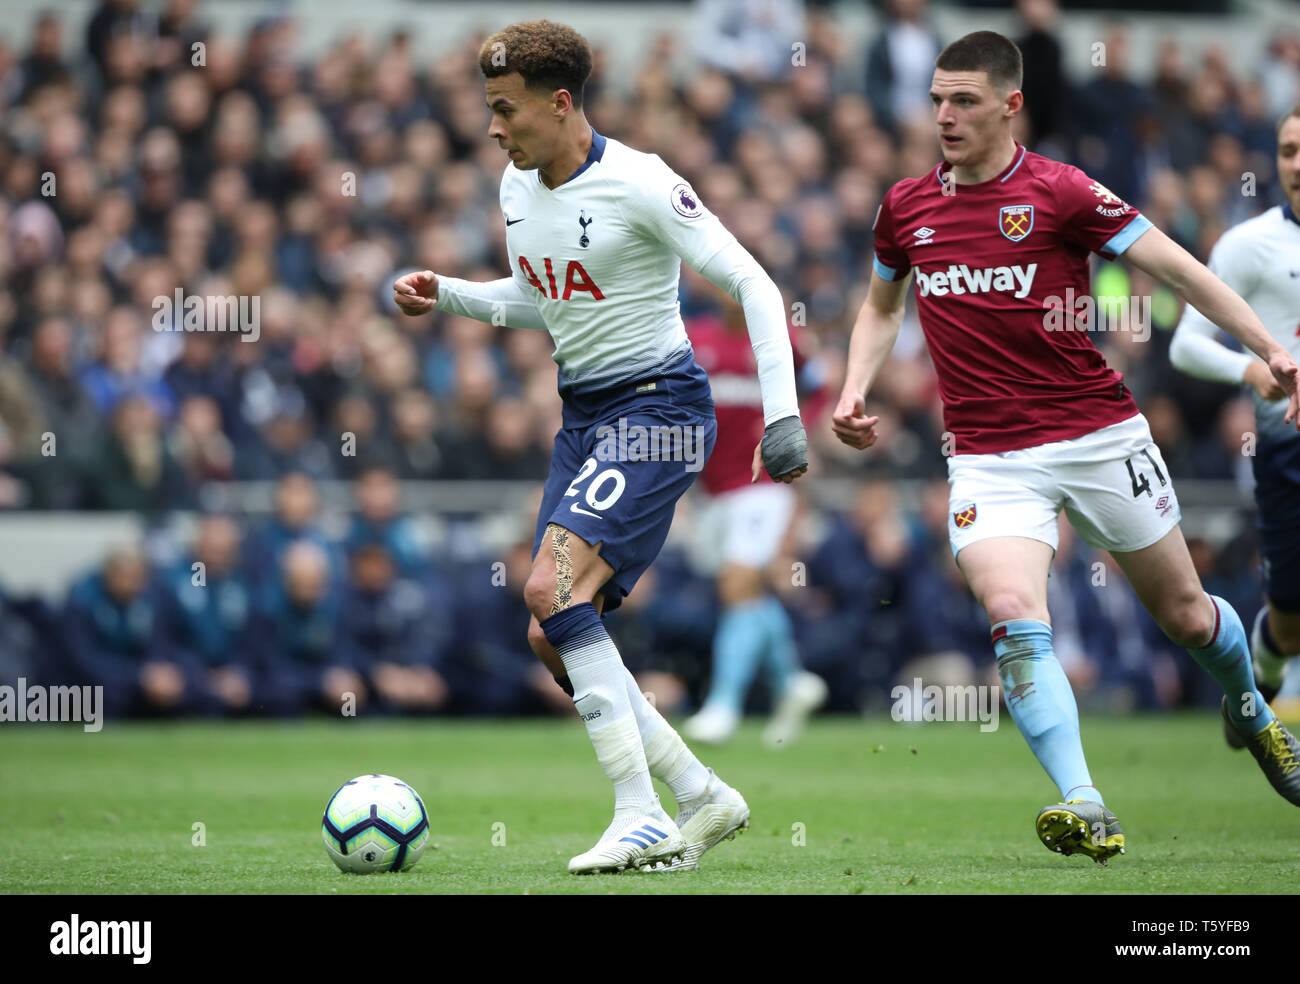 London, UK. 27th Apr 2019. Dele Alli (TH) Declan Rice (WHU) at the Tottenham Hotspur v West Ham United English Premier League match, at The Tottenham Hotspur Stadium, London, UK on April 27, 2019. **Editorial use only, license required for commercial use. No use in betting, games or a single club/league/player publications** Credit: Paul Marriott/Alamy Live News - Stock Image